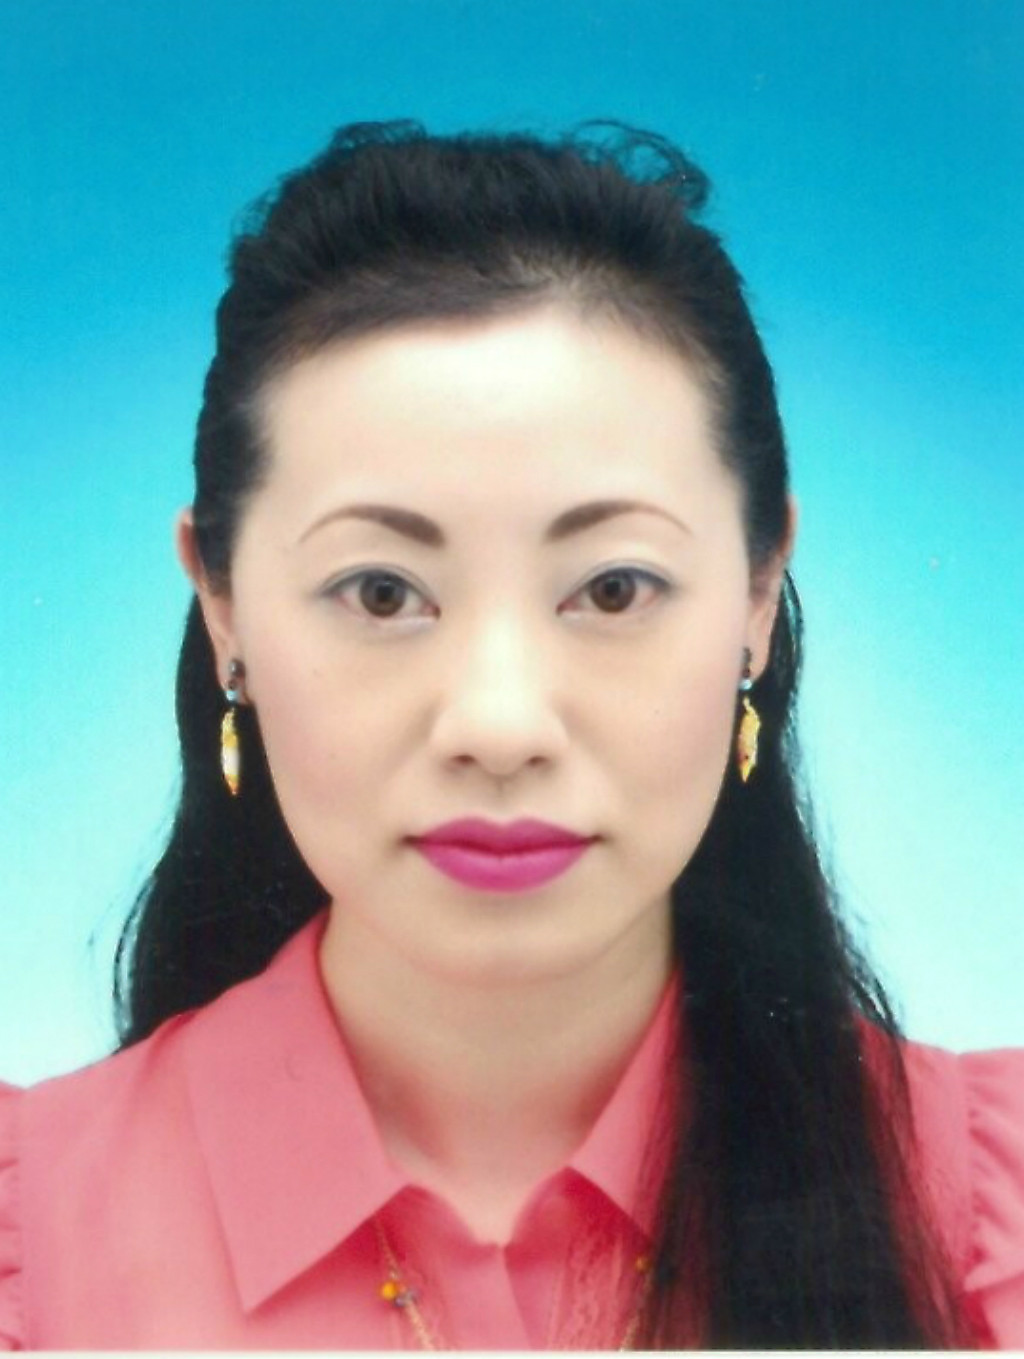 Yellowknifers organize their own search for missing Japanese tourist — EDGE Oct 30, 2014